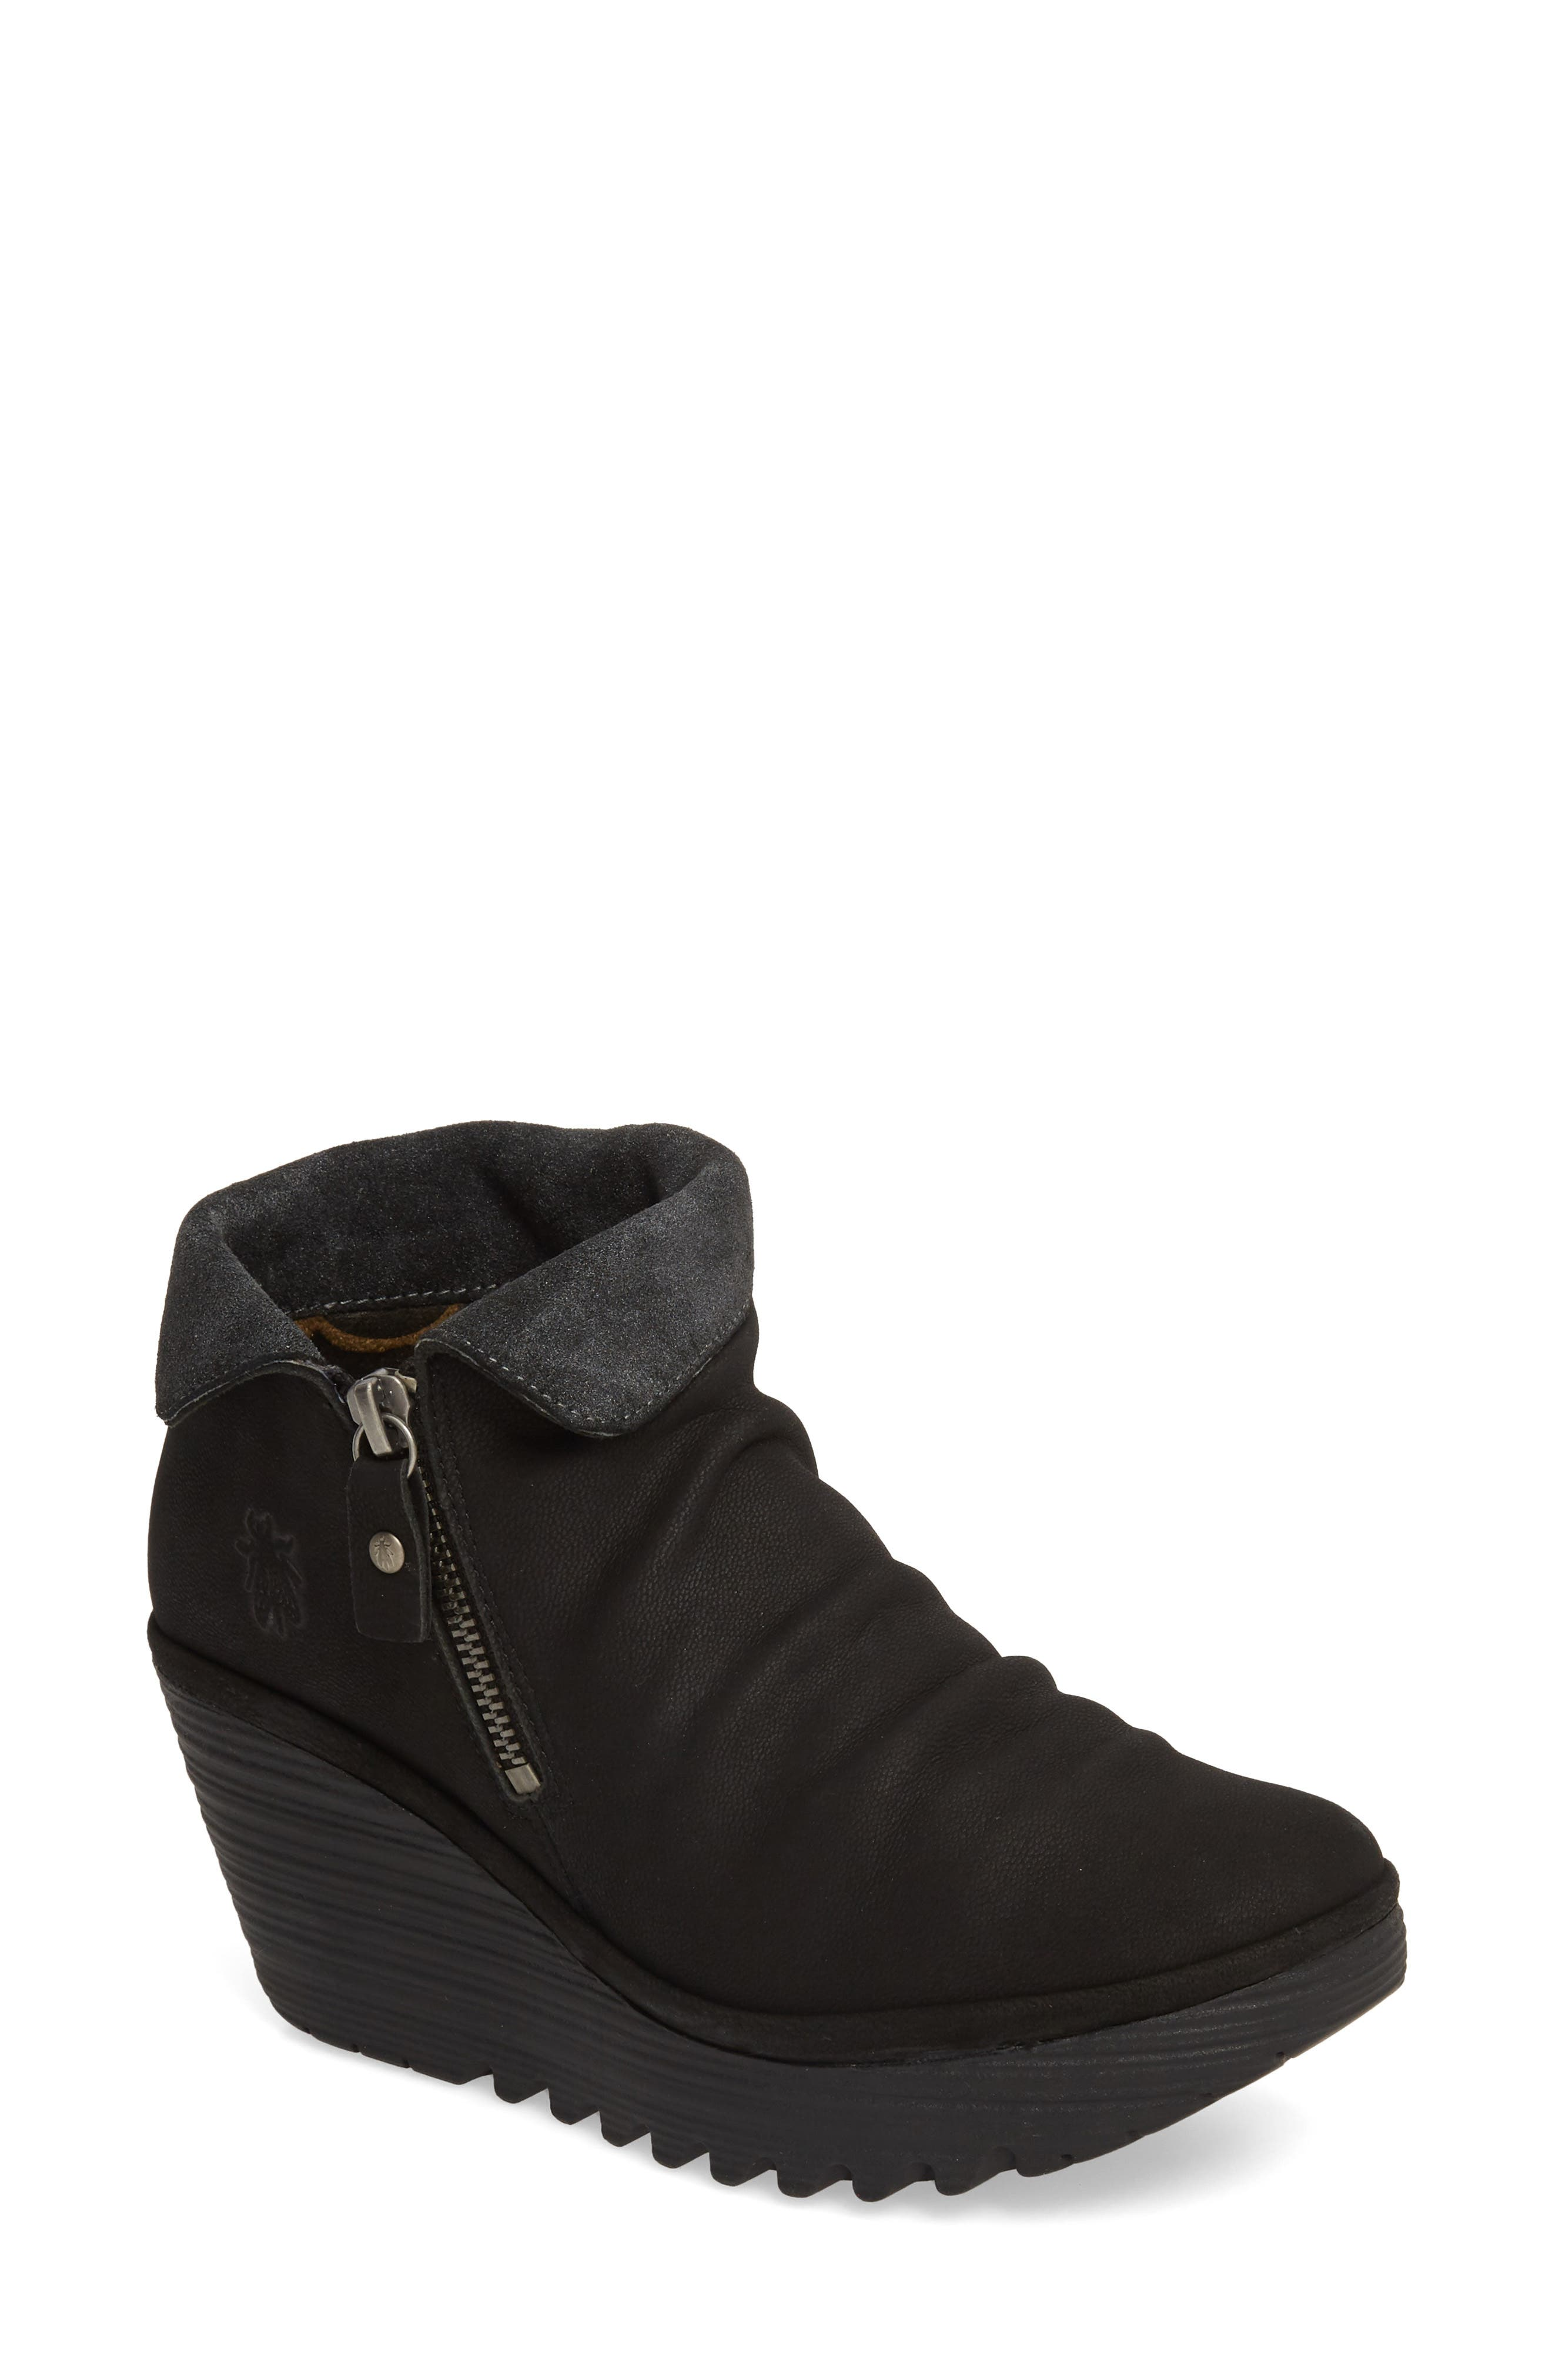 Fly London Yoxi Wedge Bootie - Black